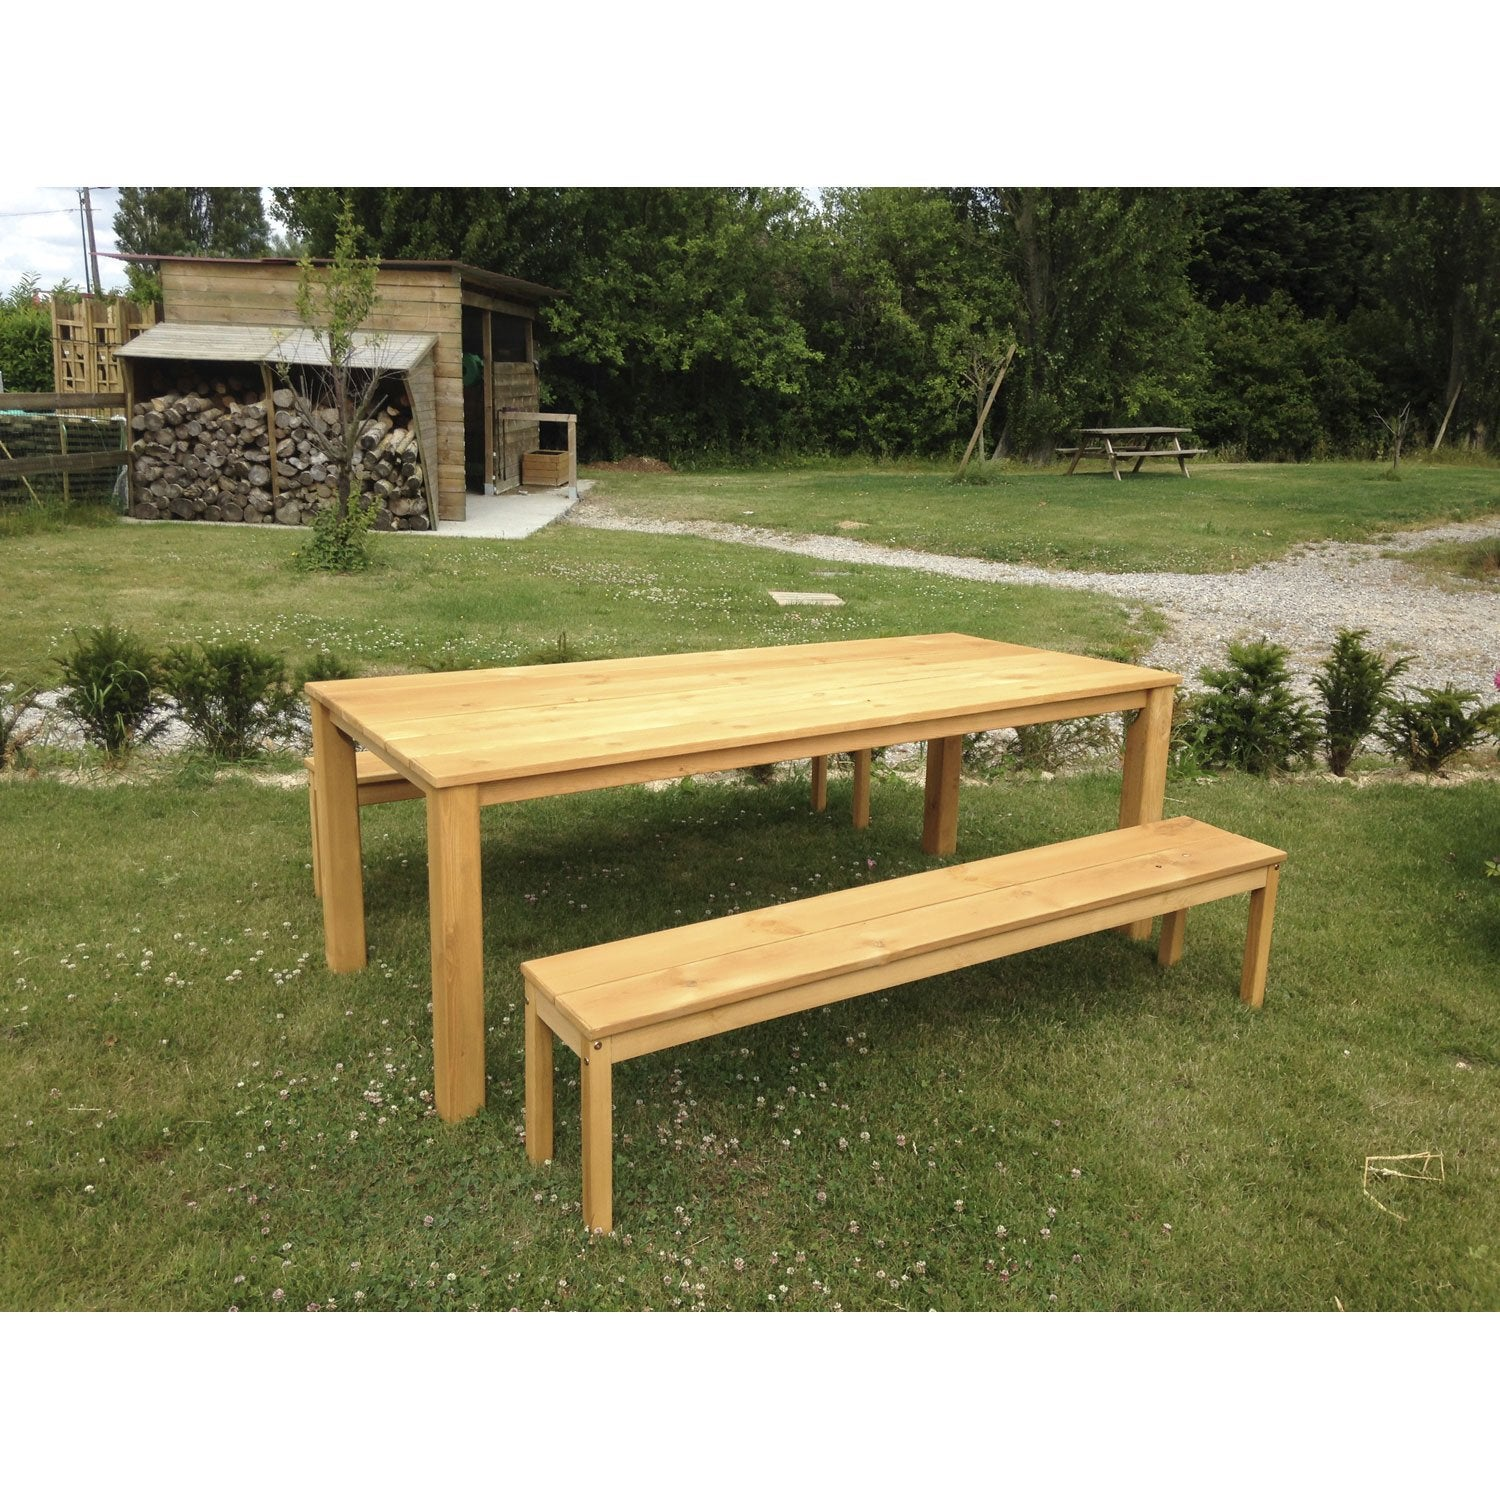 Salon de jardin set ferme bois ch ne vieilli 1 table 2 bancs leroy merlin - Leroy merlin sombrillas de jardin ...